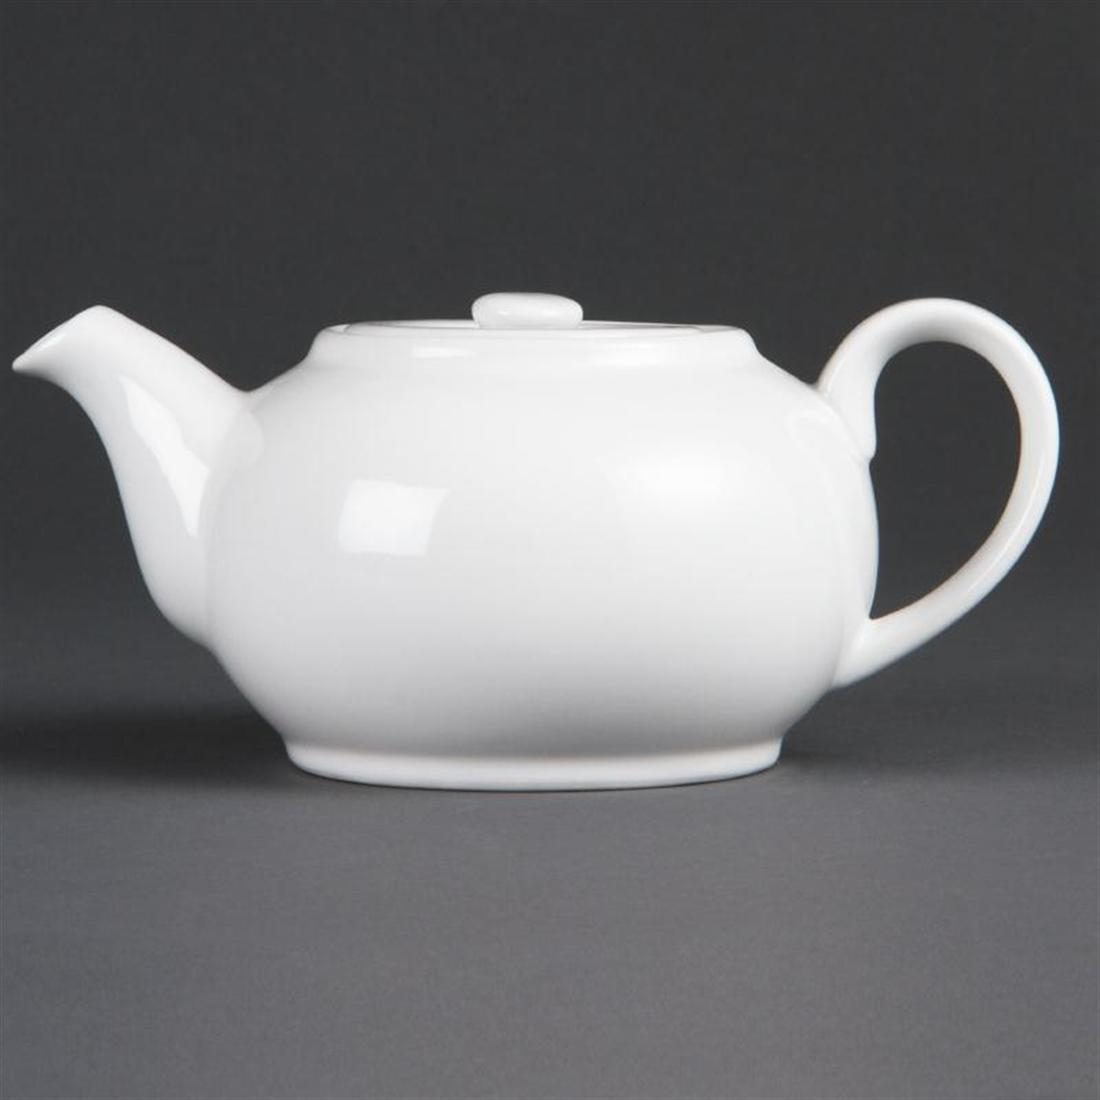 Bulk Buy Pack of 12 Olympia Whiteware Teapots 426ml